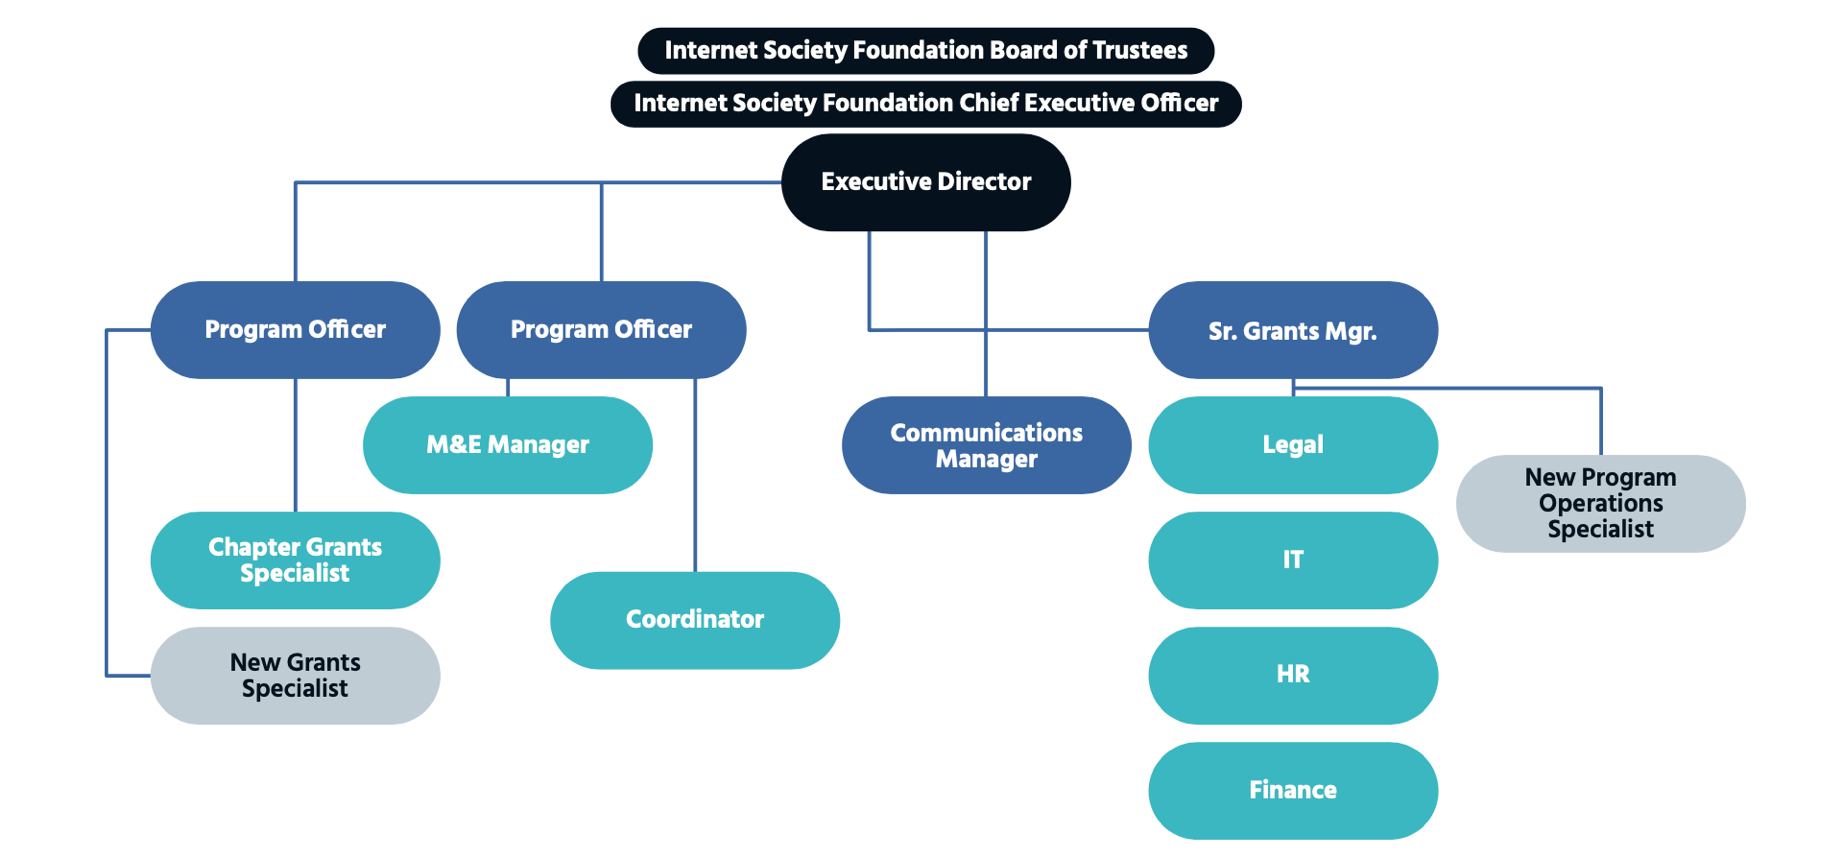 Internet Society Foundation Organisational Chart